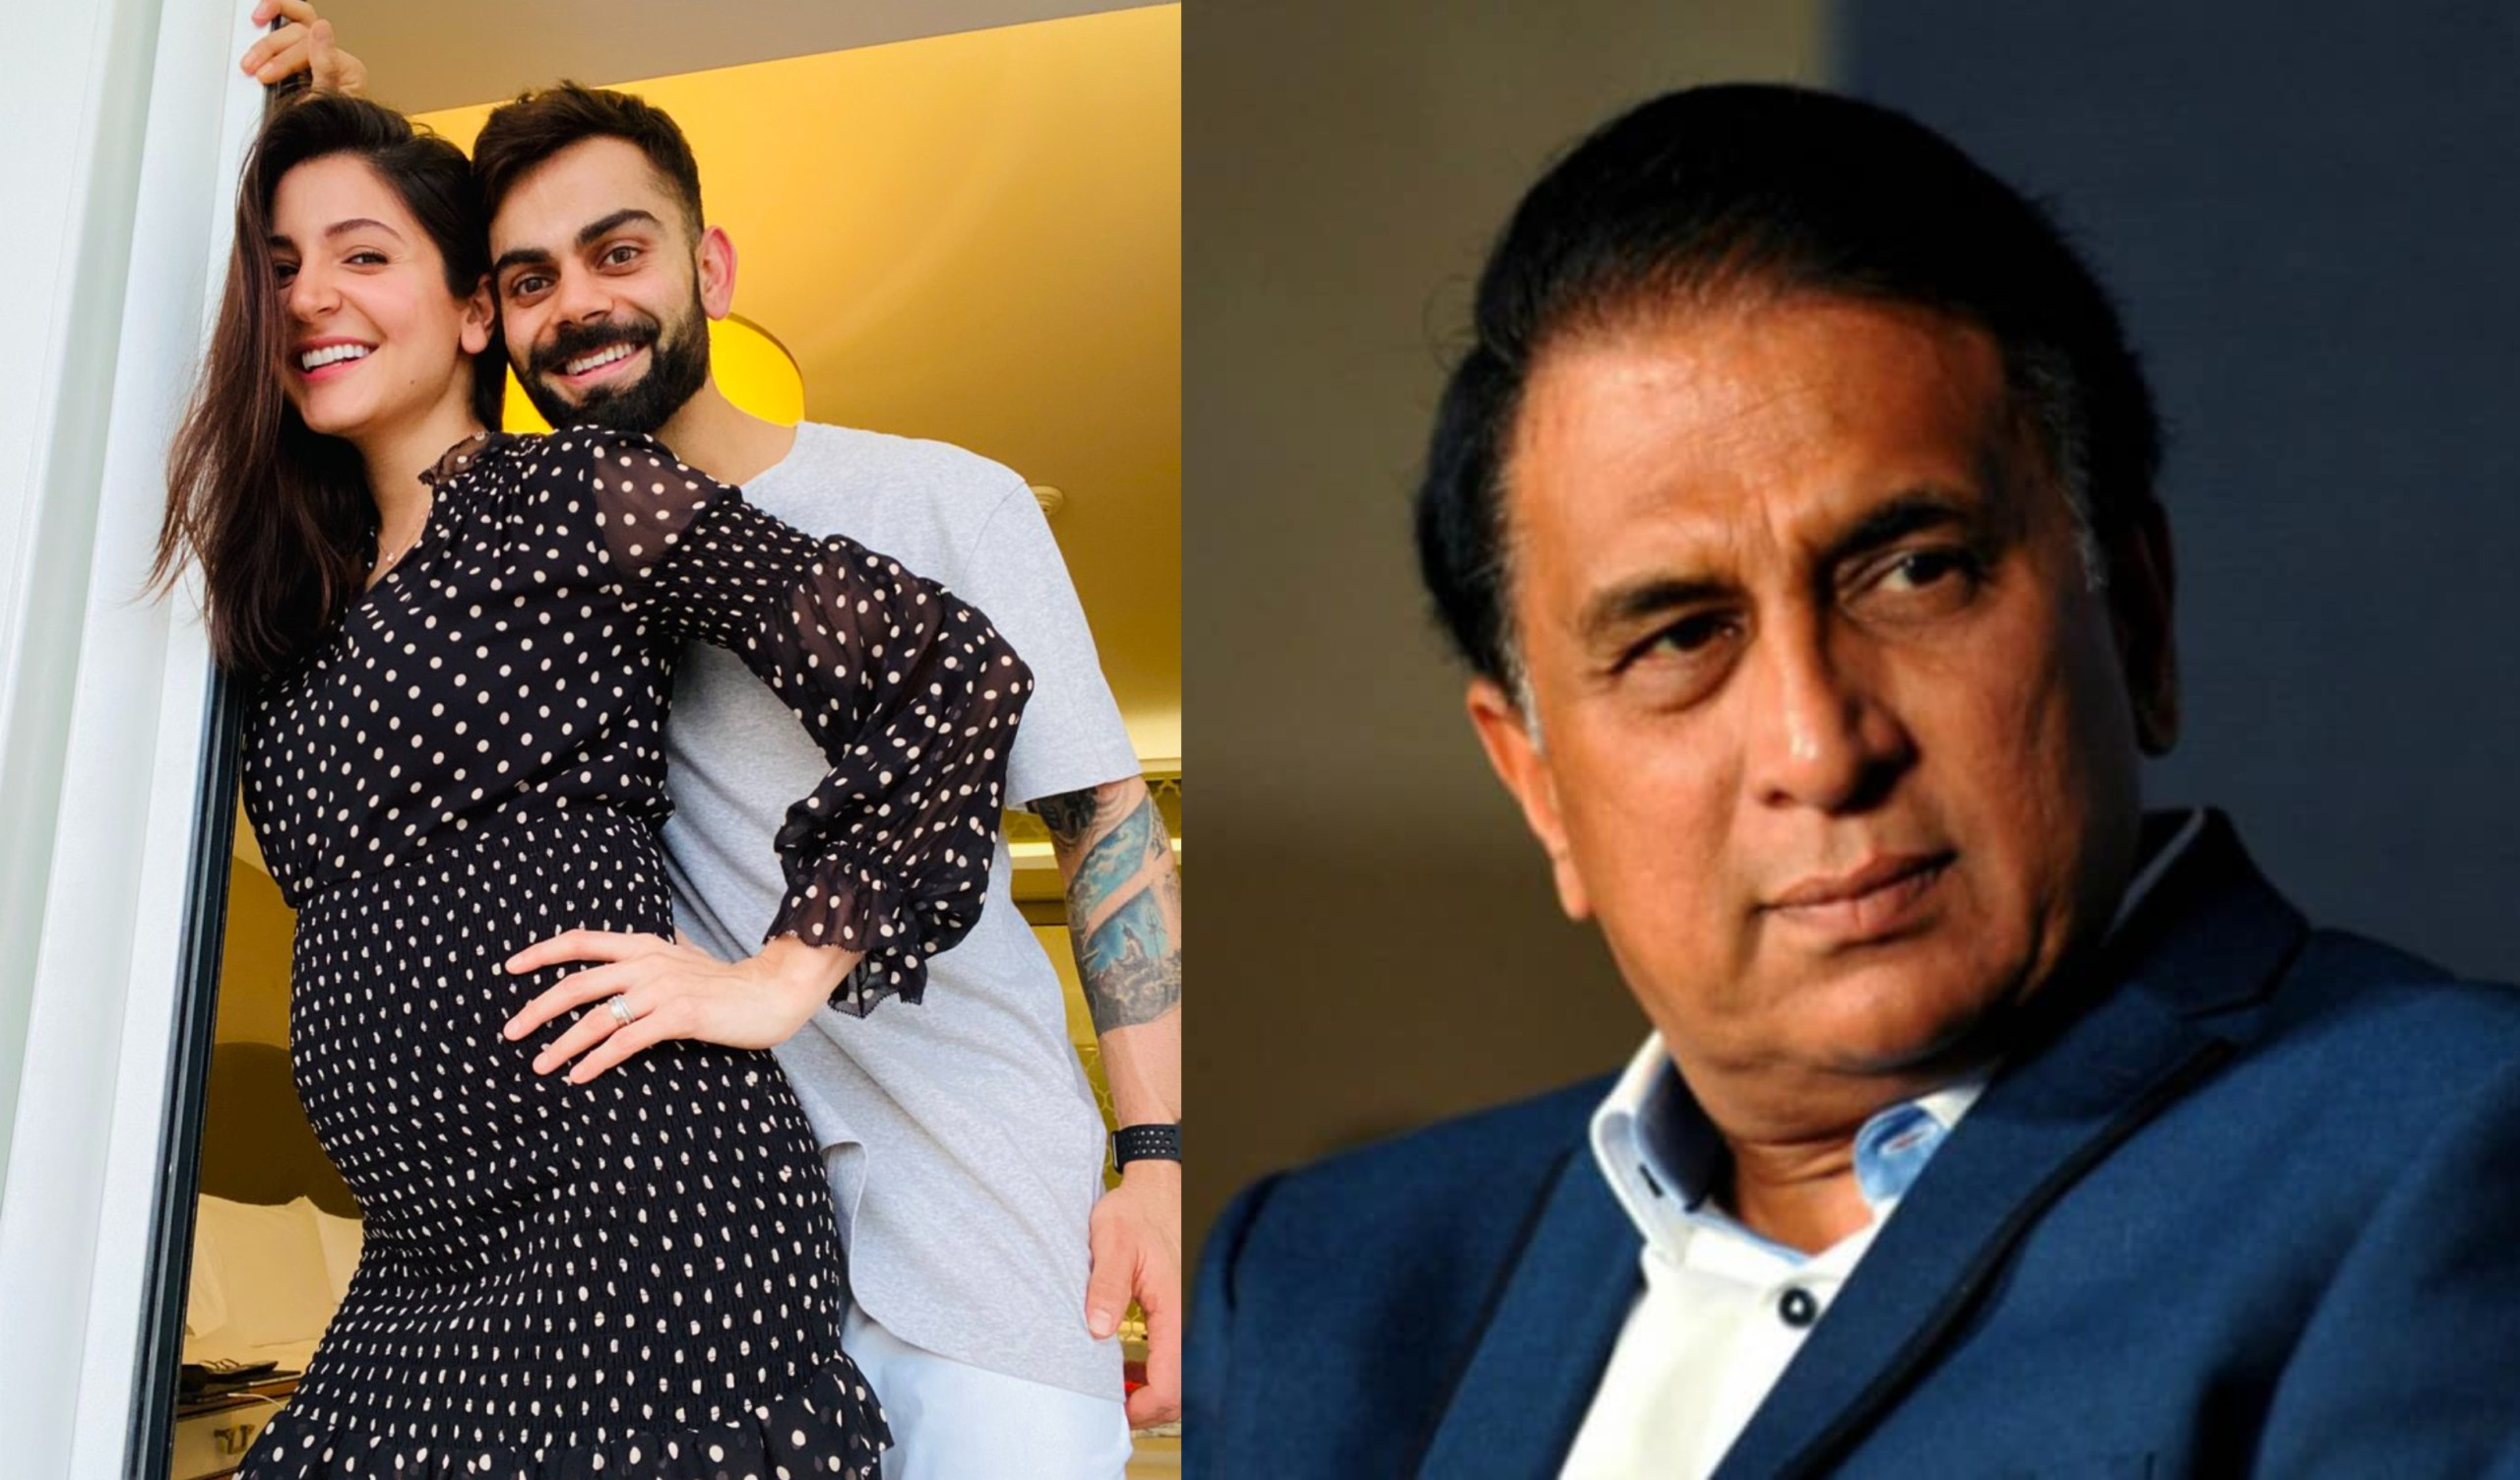 Sunil Gavaskar Attacked On Virat And Anushka's Personal Life While Commentaring